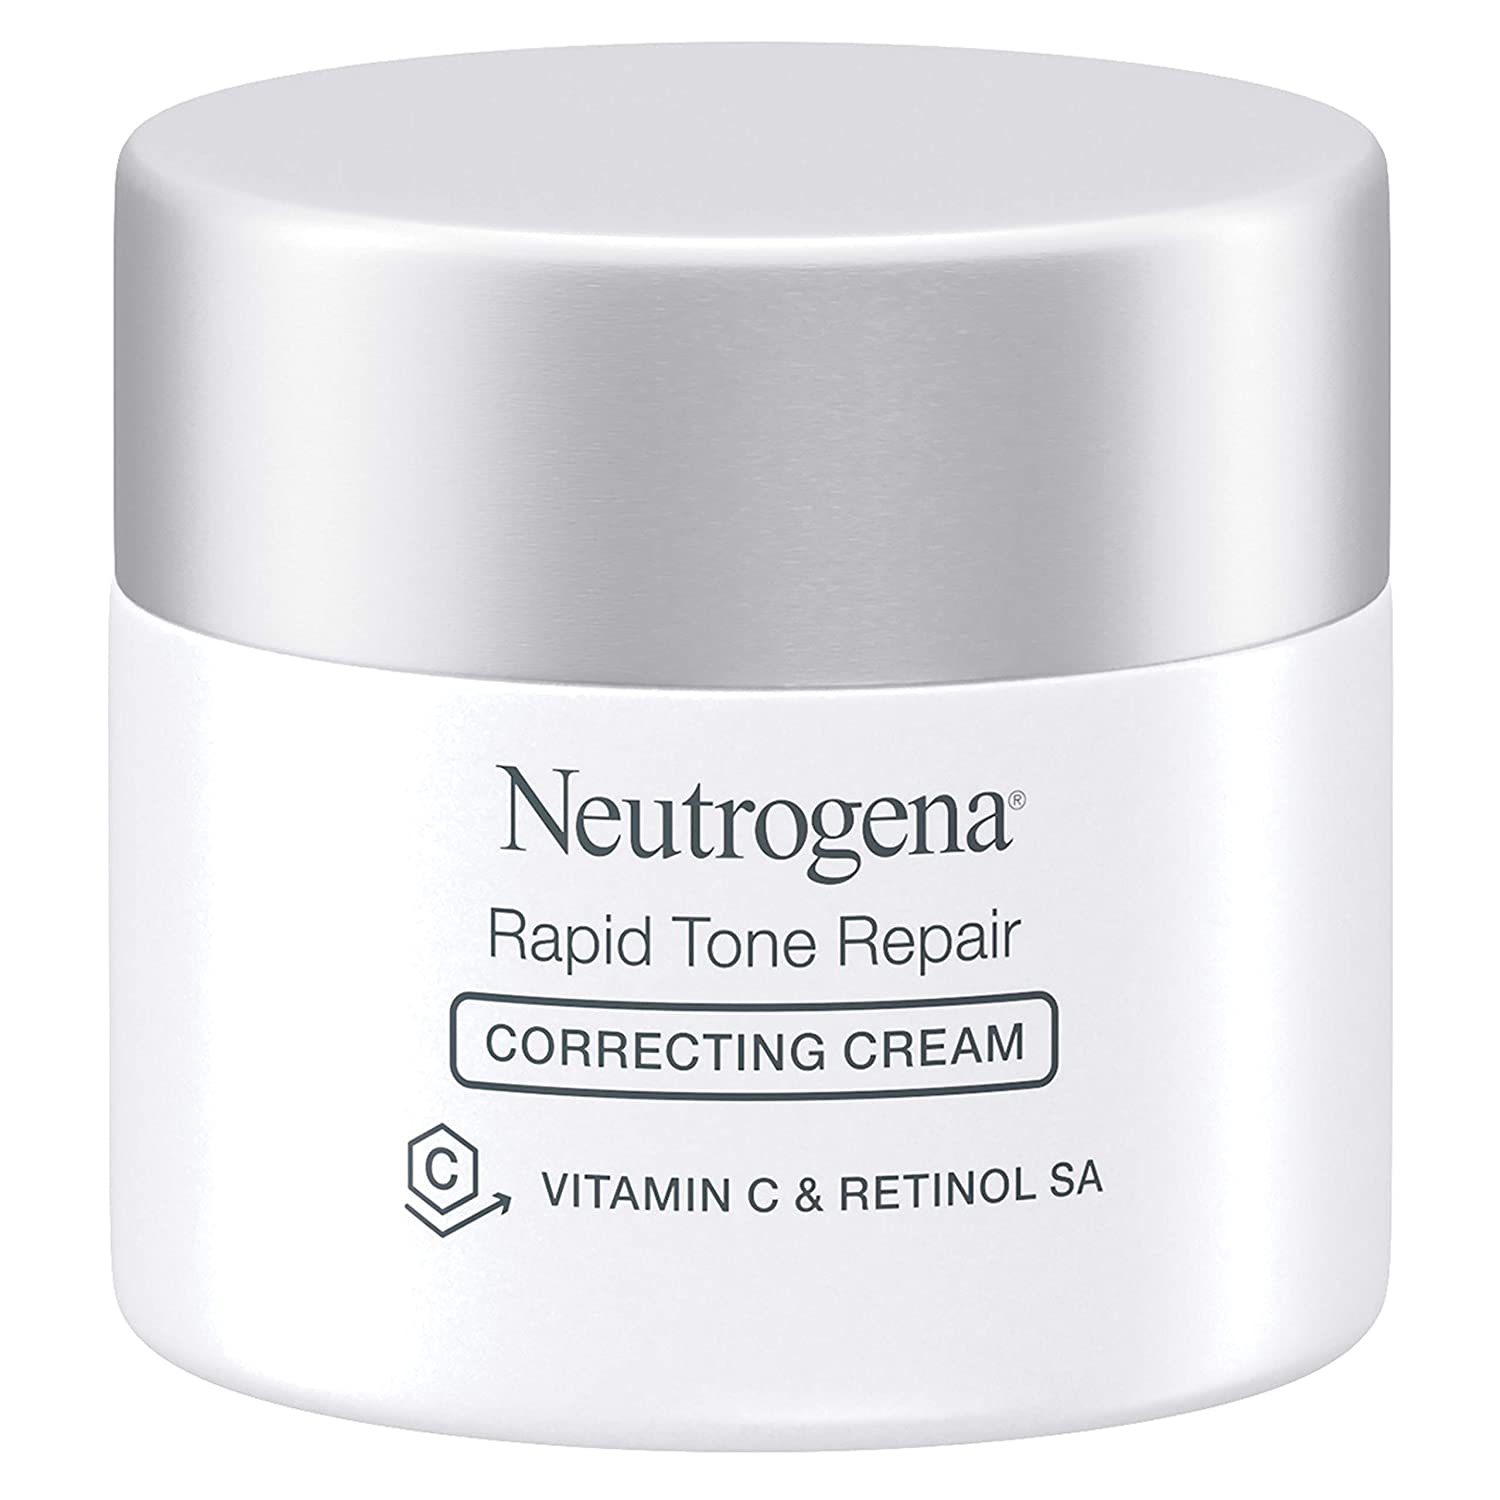 Neutrogena Rapid Tone Repair Face Moisturizer with Retinol SA, Vitamin C, Hyaluronic Acid and SPF 30 Sunscreen, Tone-Evening & Brightening Retinol Facial Moisturizer Cream